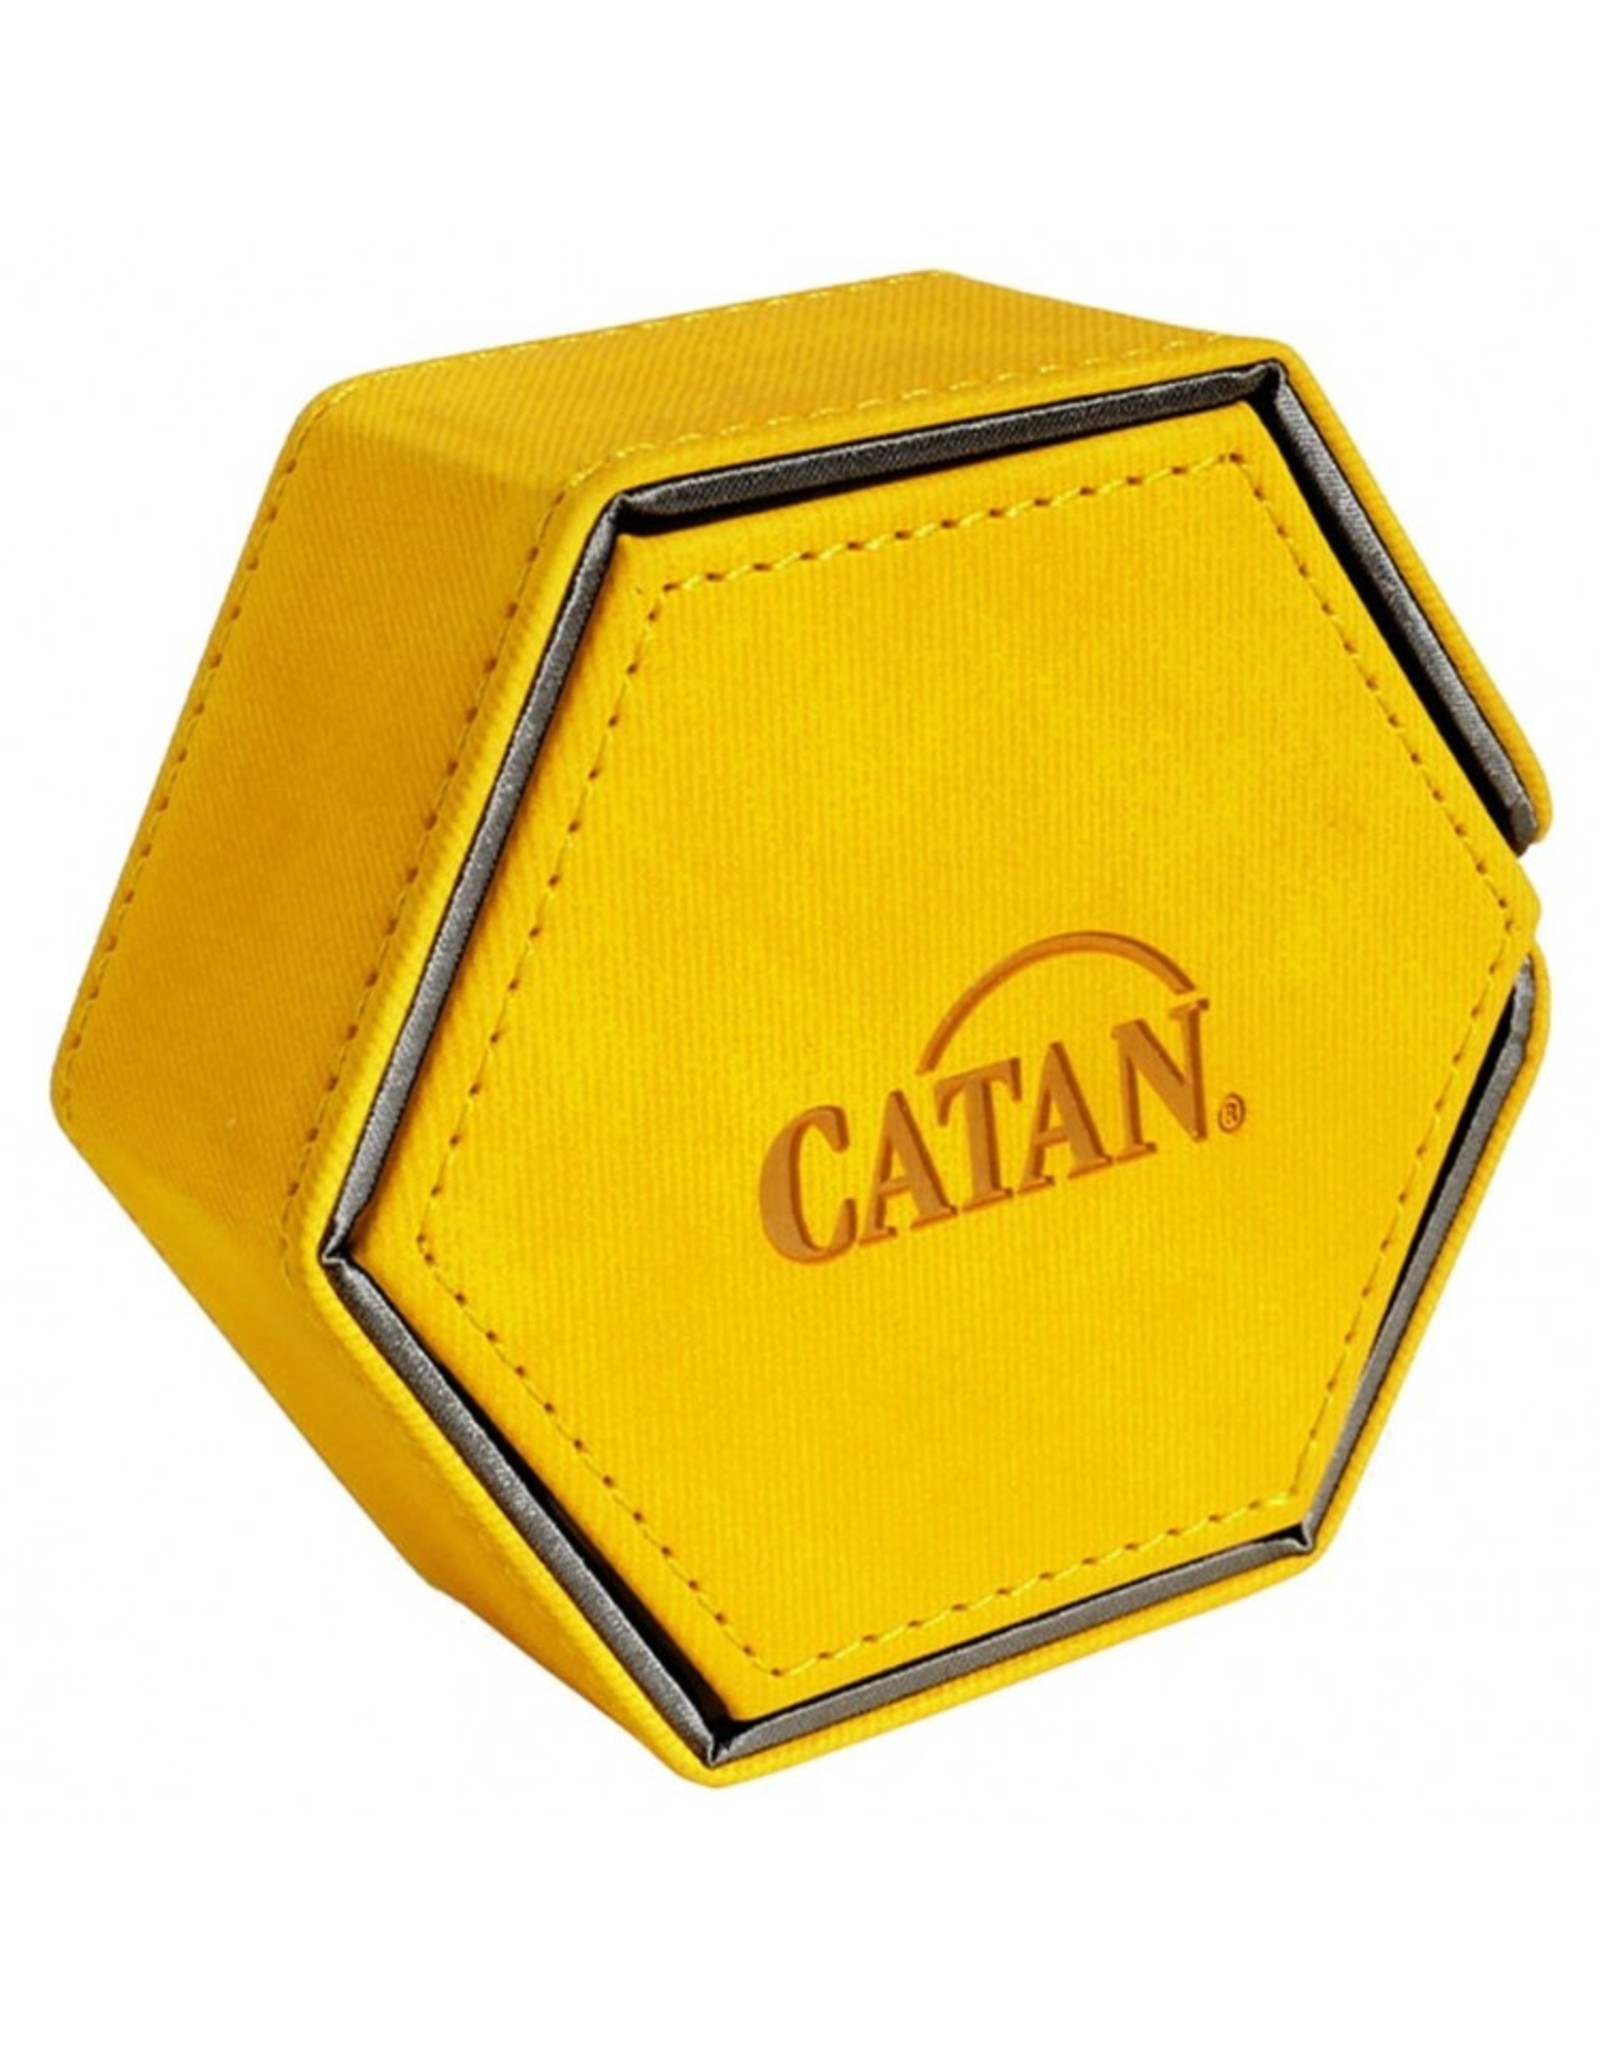 GameGenic Dice Tower: Catan: Hexatower Yellow